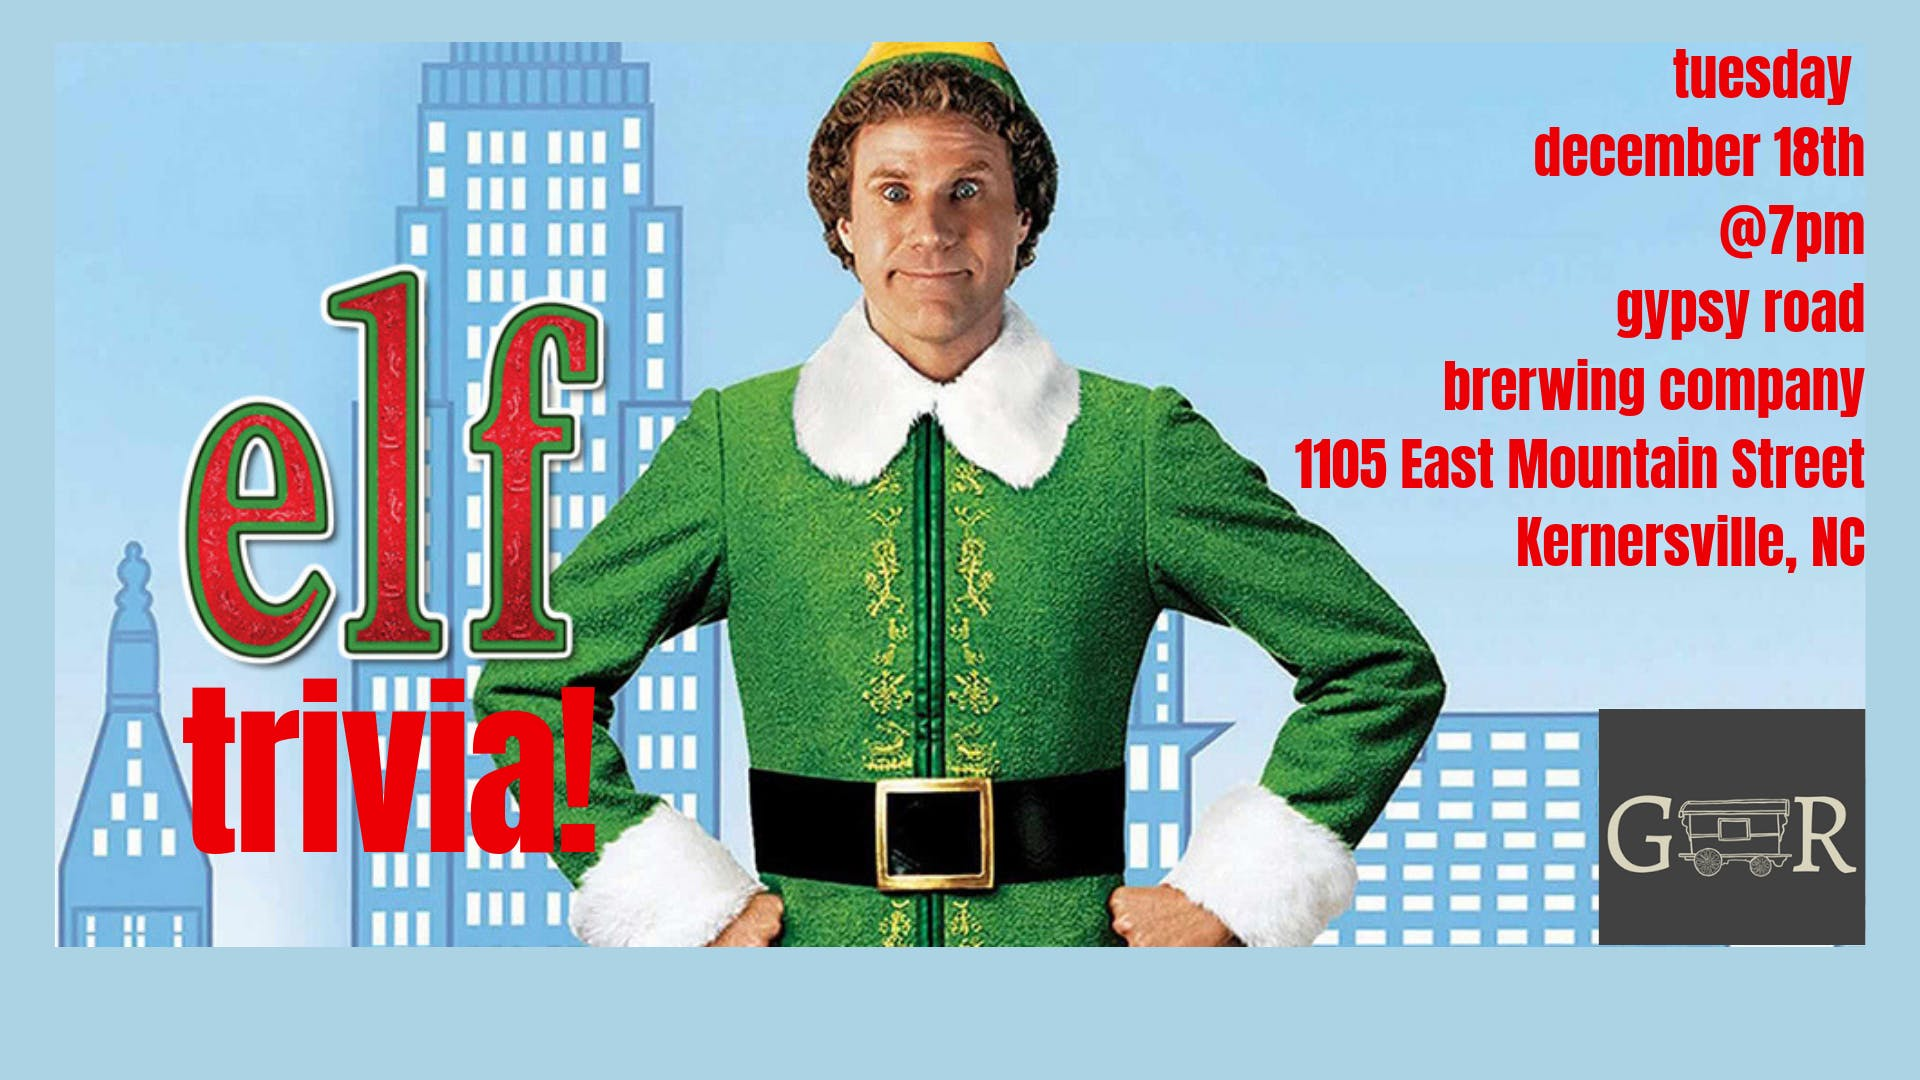 Elf Trivia at Gypsy Road Brewing Company | Kernersville